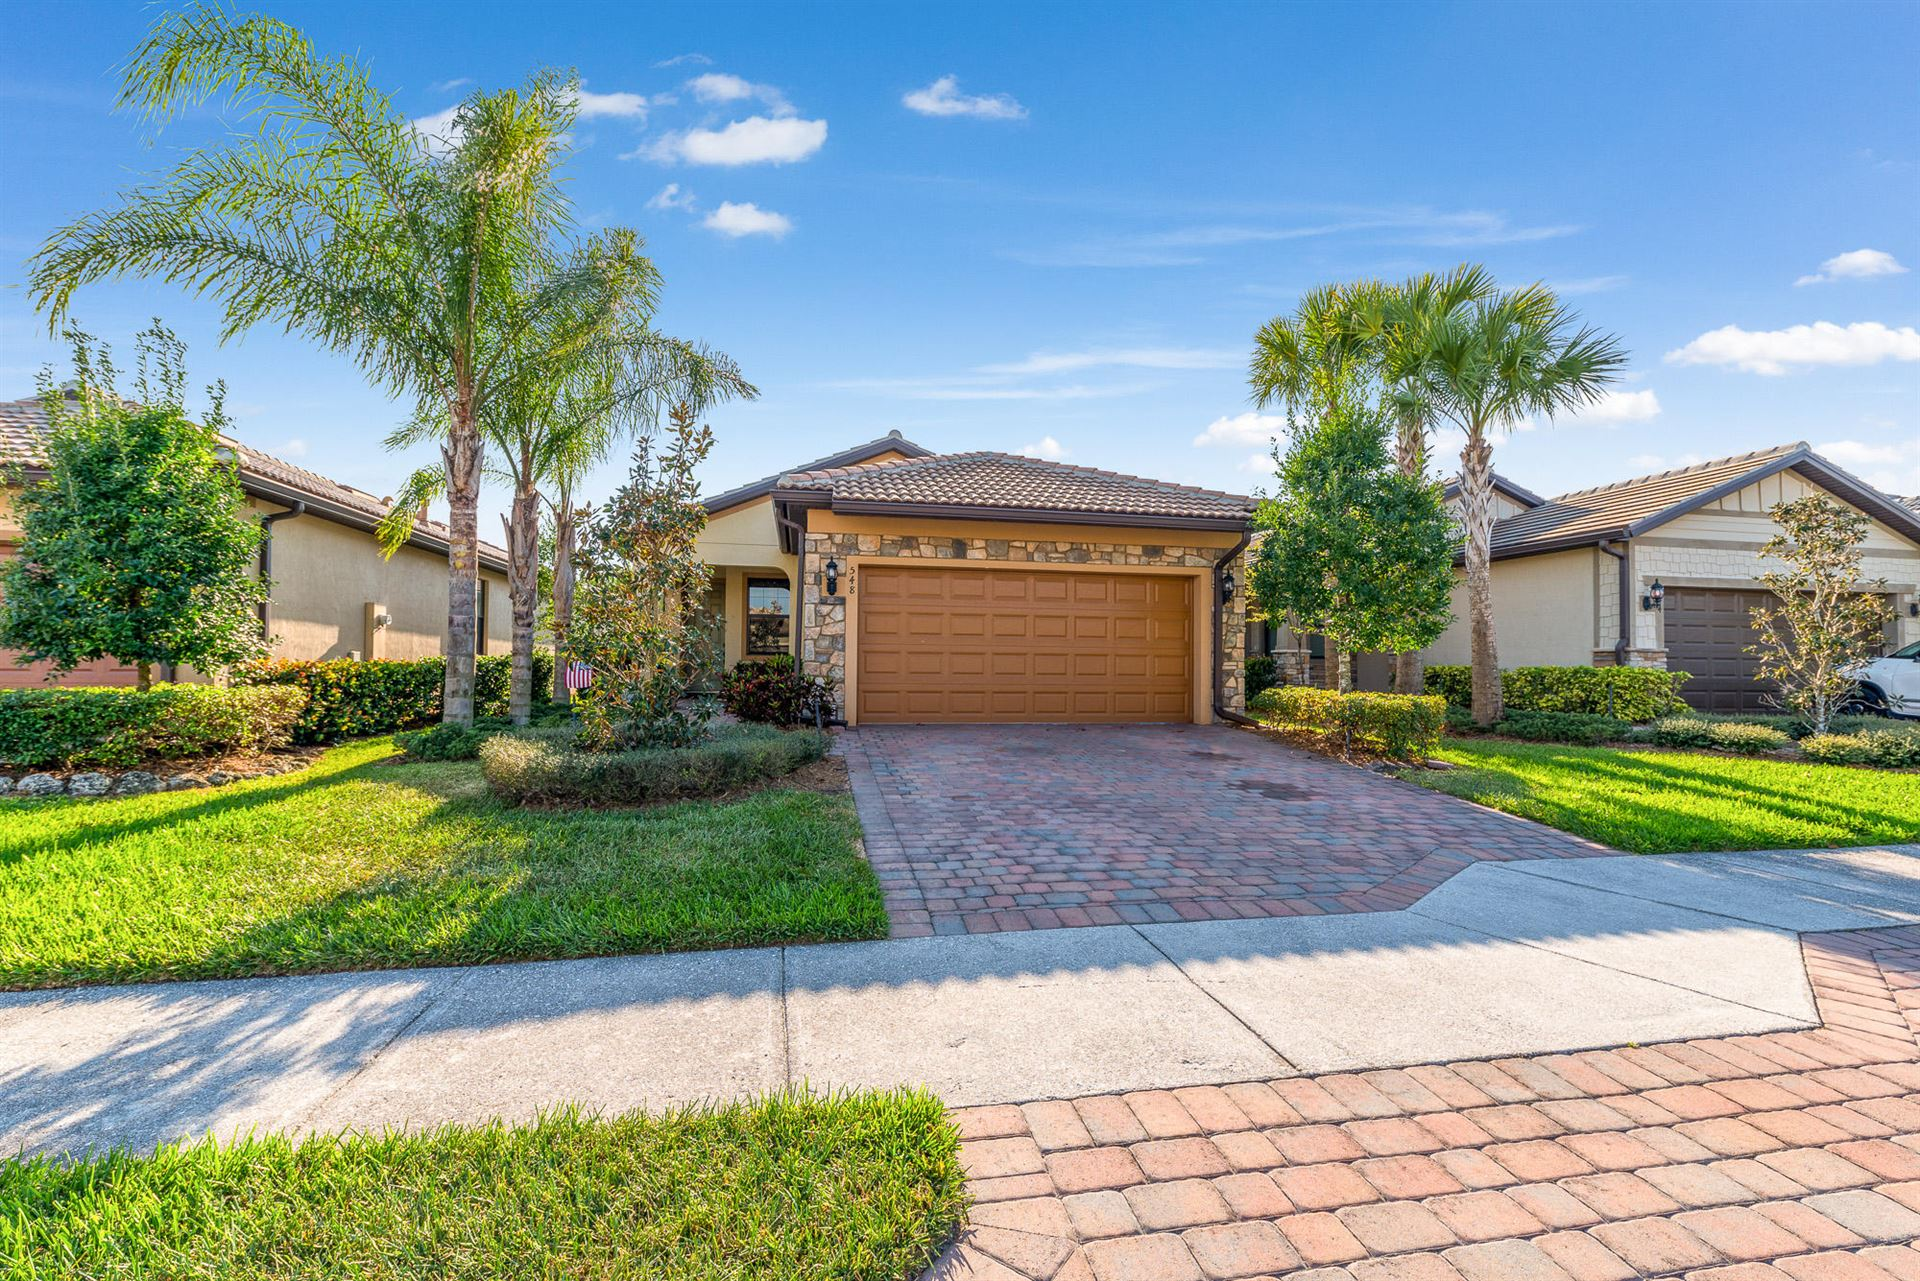 548 SE Monet Drive, Port Saint Lucie, FL 34984 - #: RX-10706609